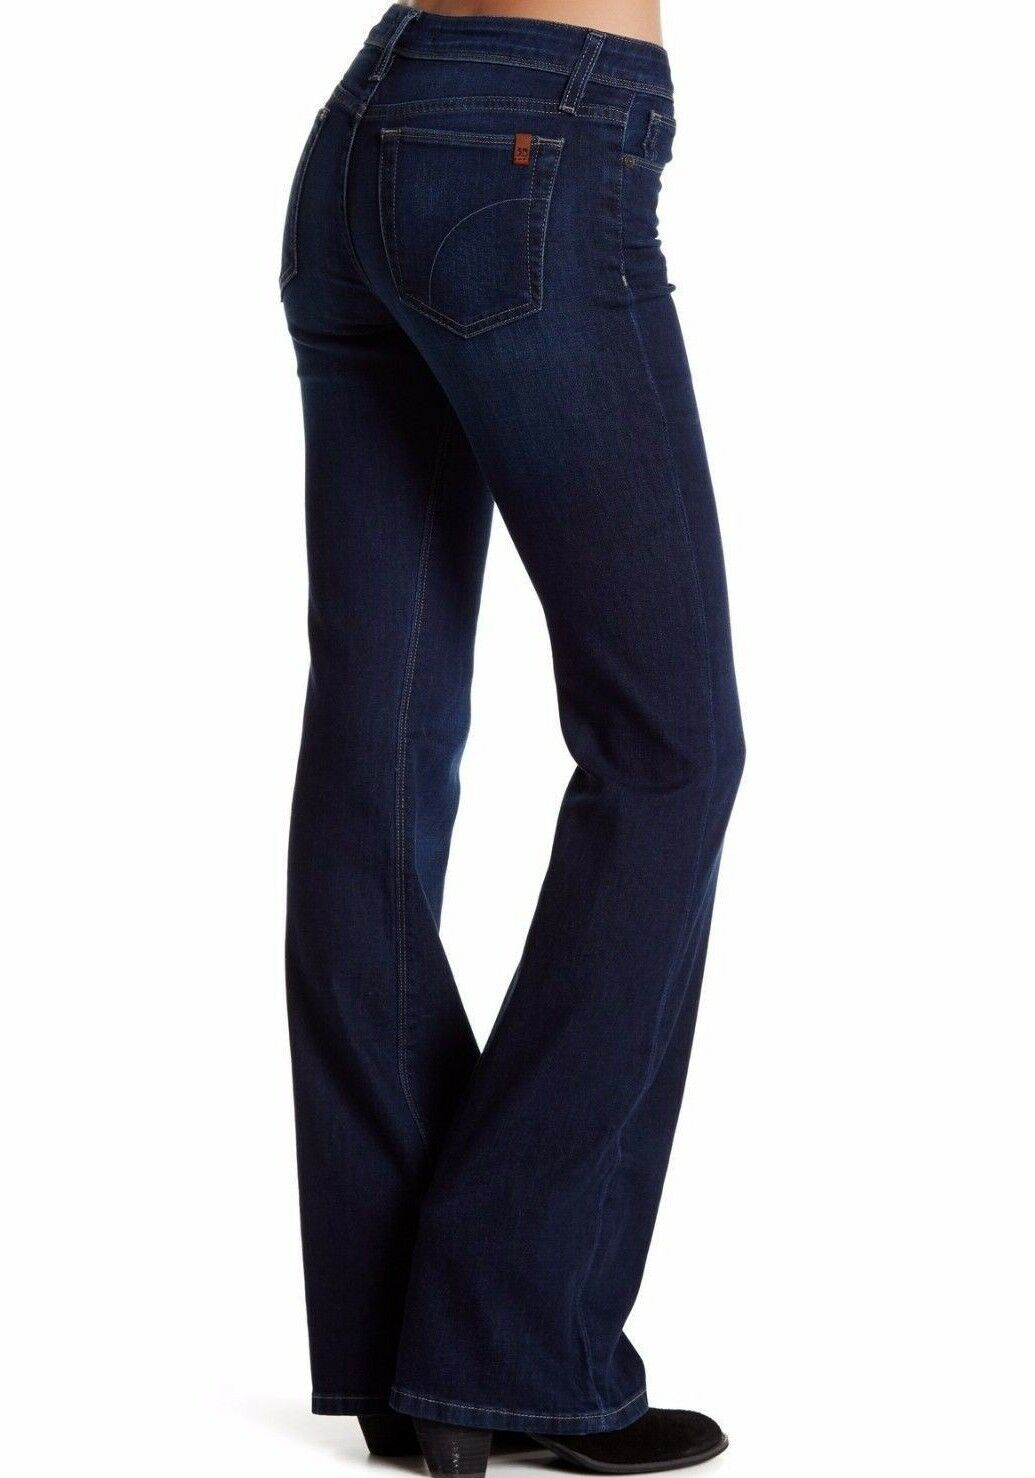 NWT JOE'S WOMEN Sz26 THE ICON FLARE MIDRISE STRETCH JEANS ANDERS blueE